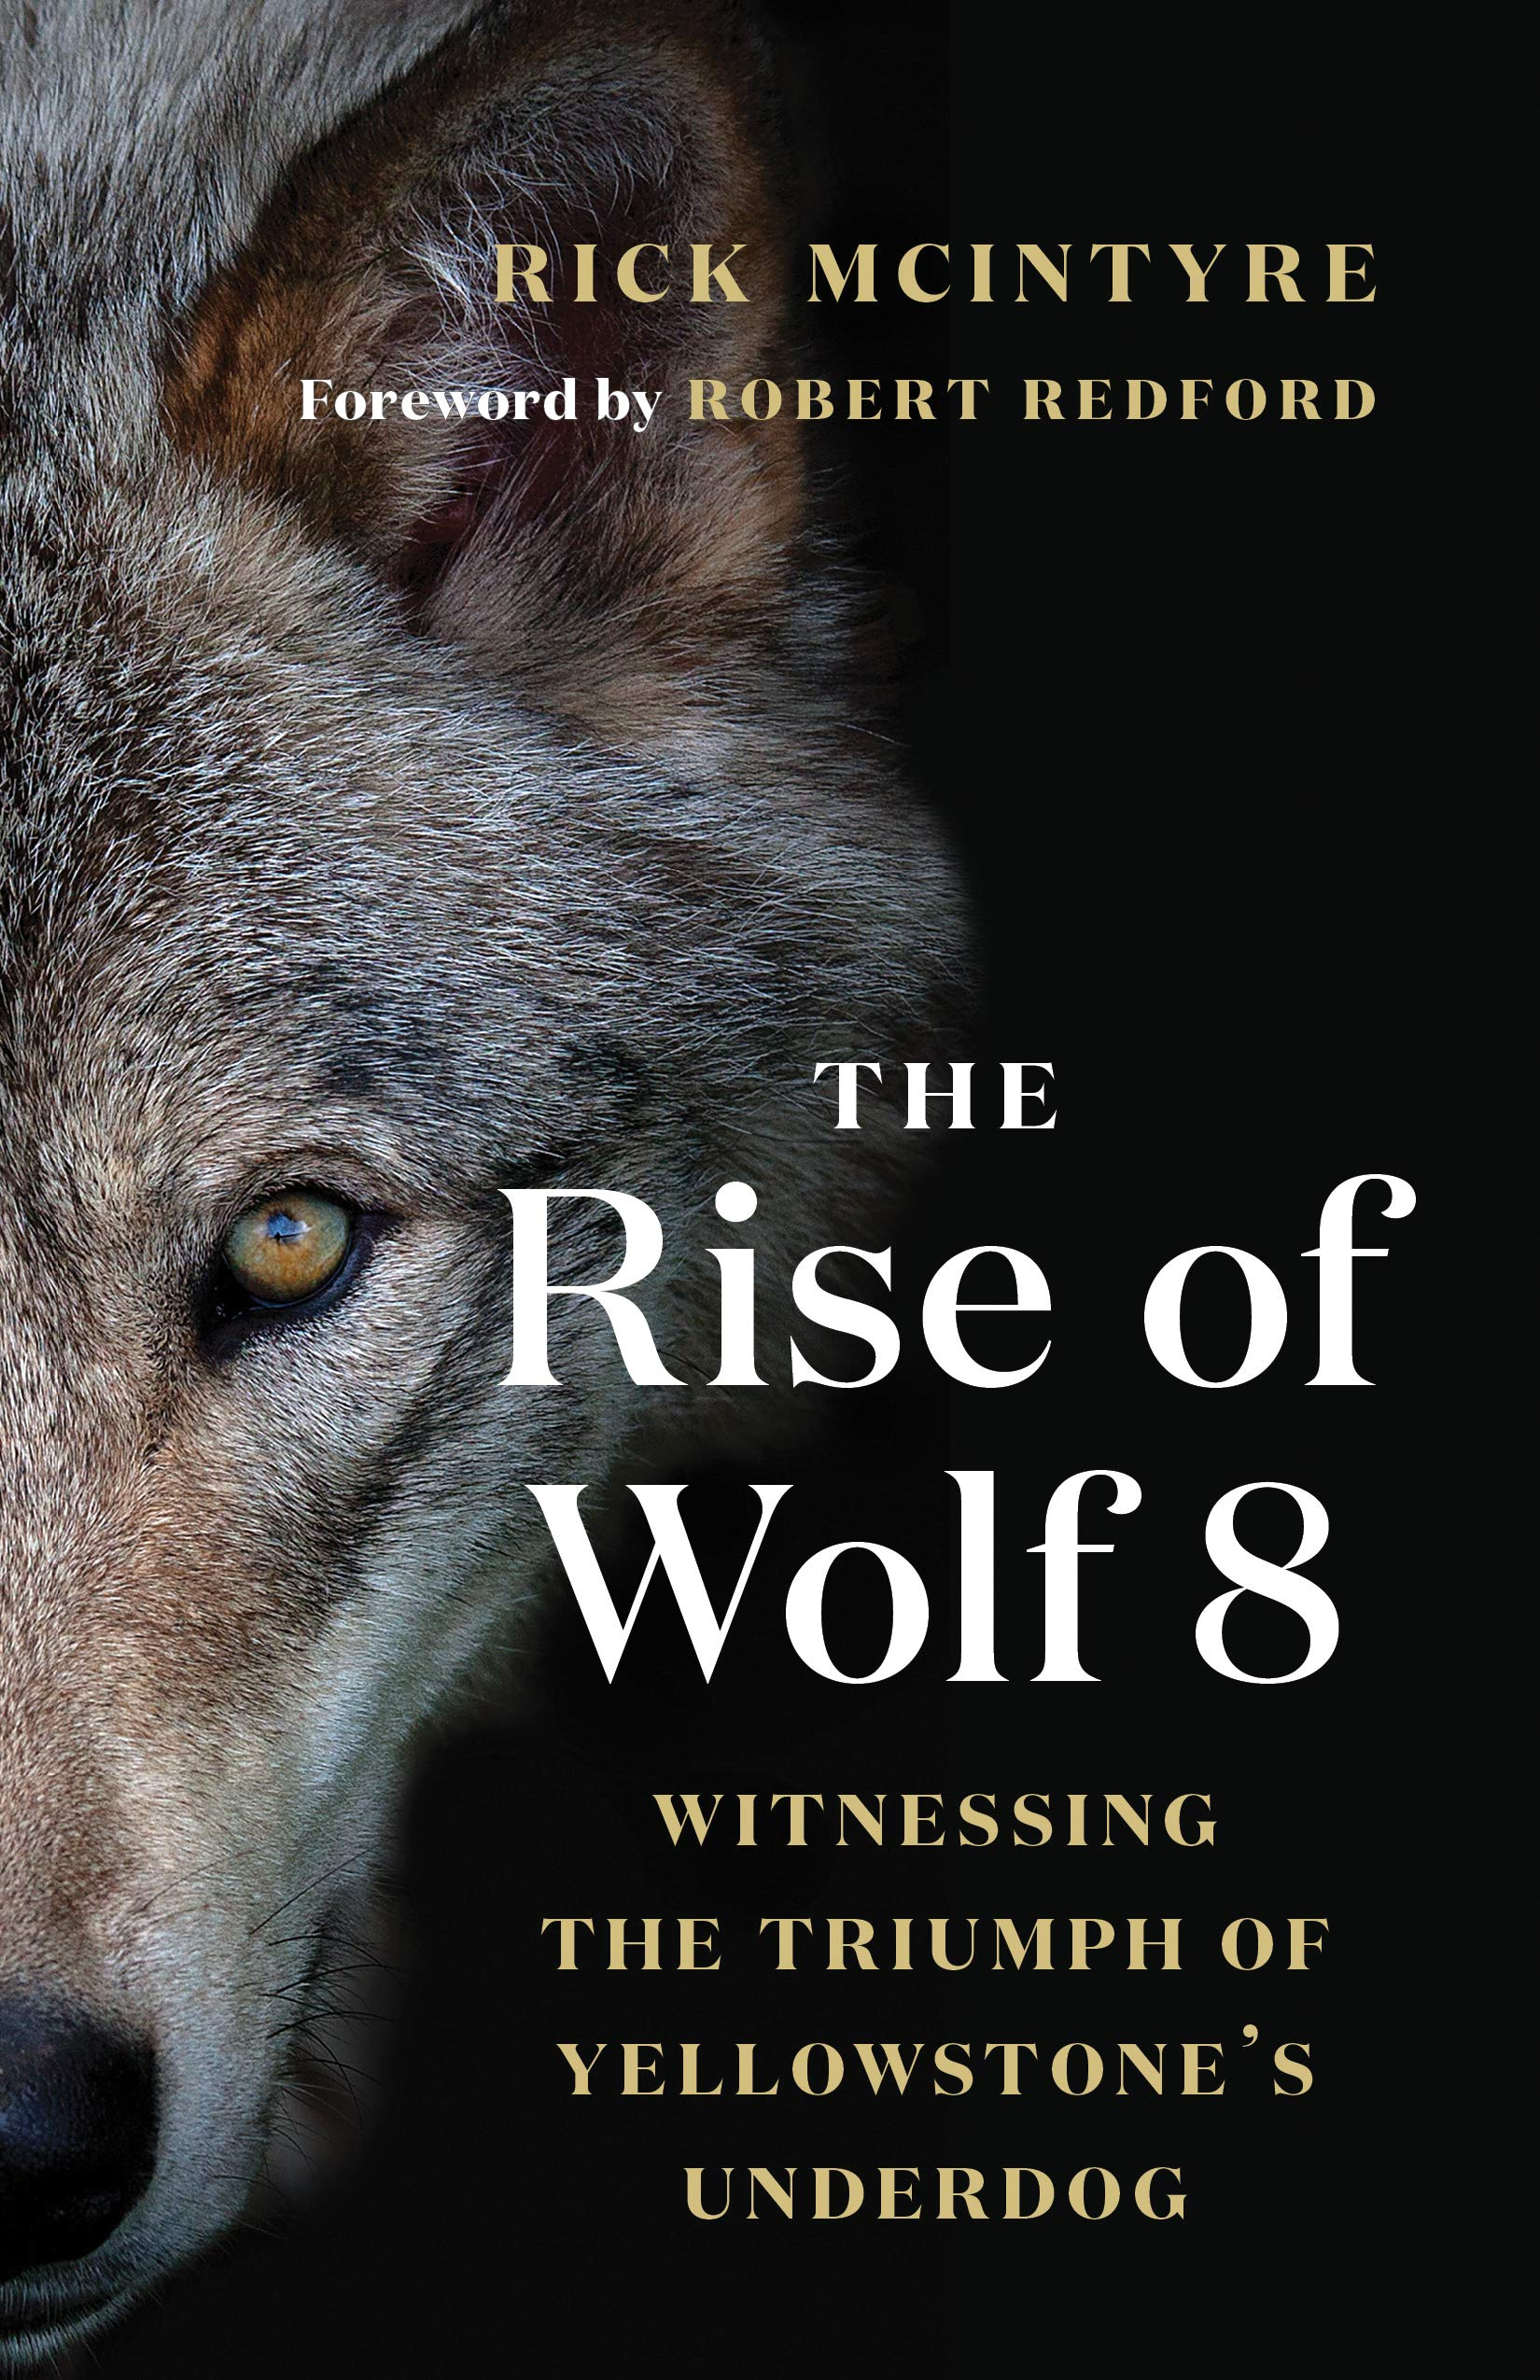 800a715be8e2 The Rise of Wolf 8  Witnessing the Triumph of Yellowstone s Underdog  Hardcover – October 15